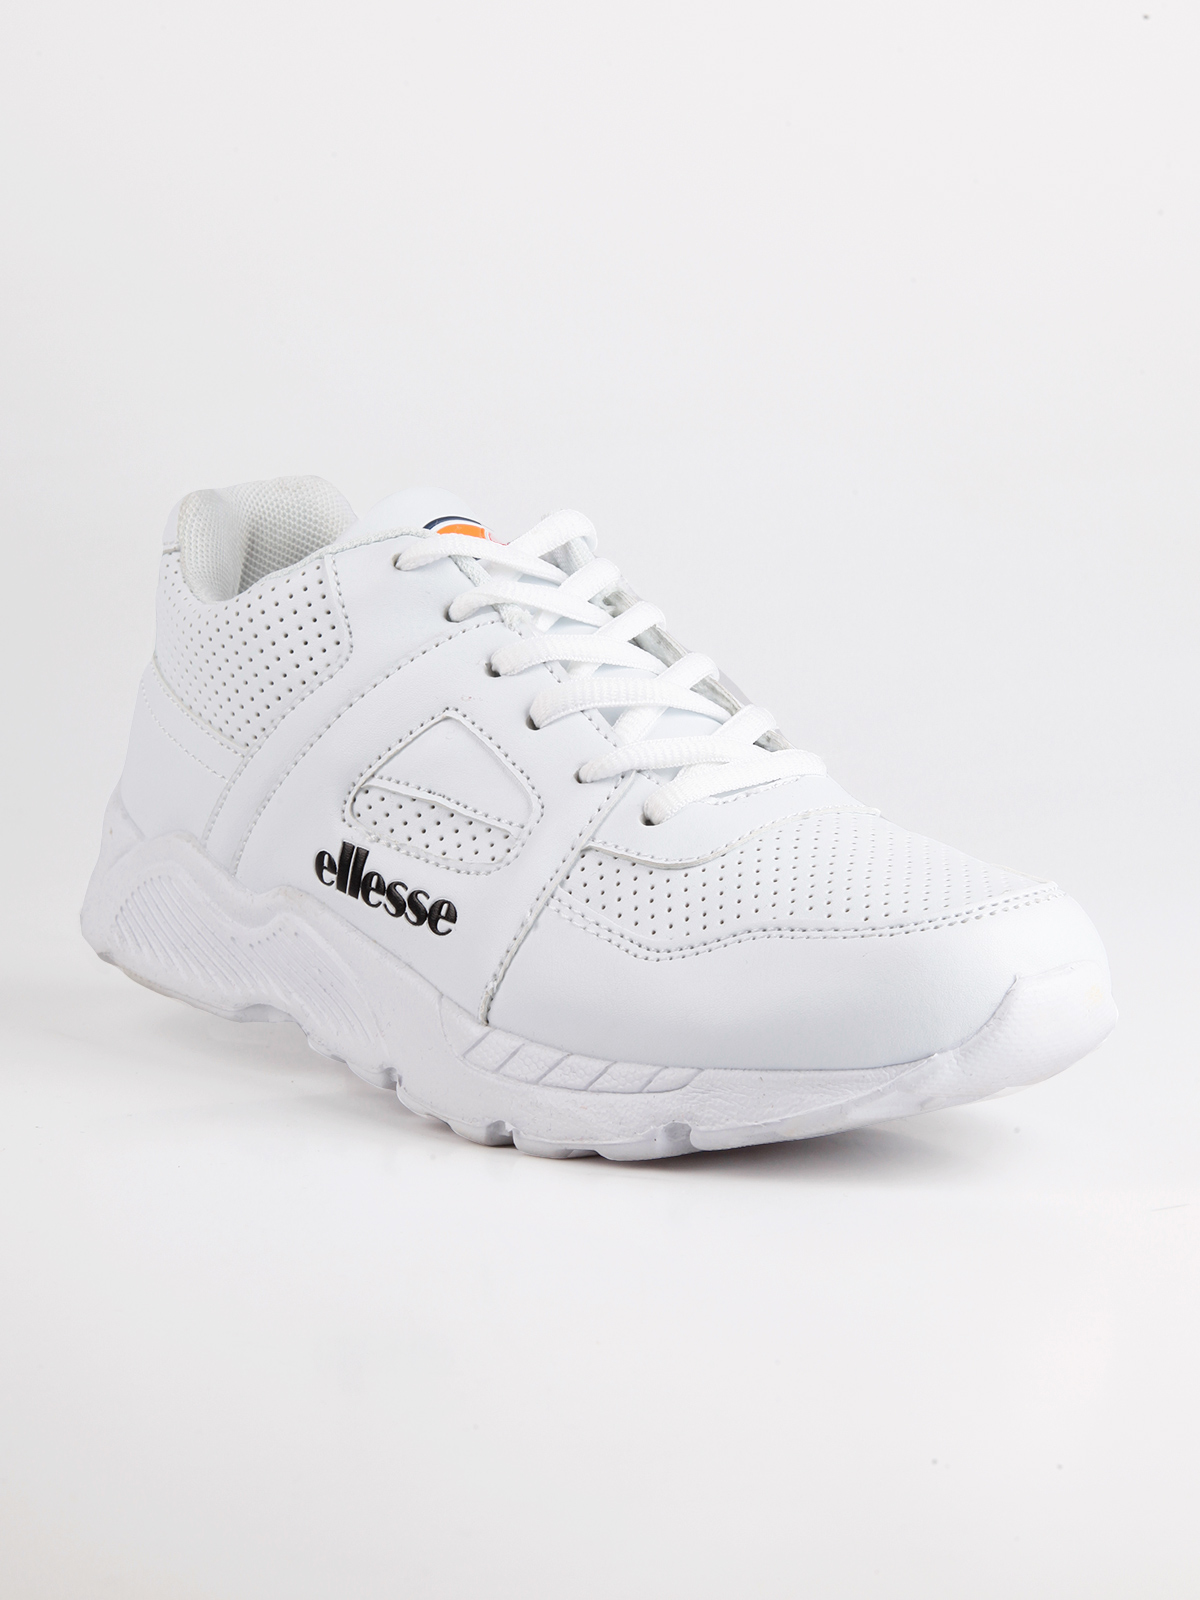 ELLESSE Woman Casual Cosy Ventilated White Sports Shoes